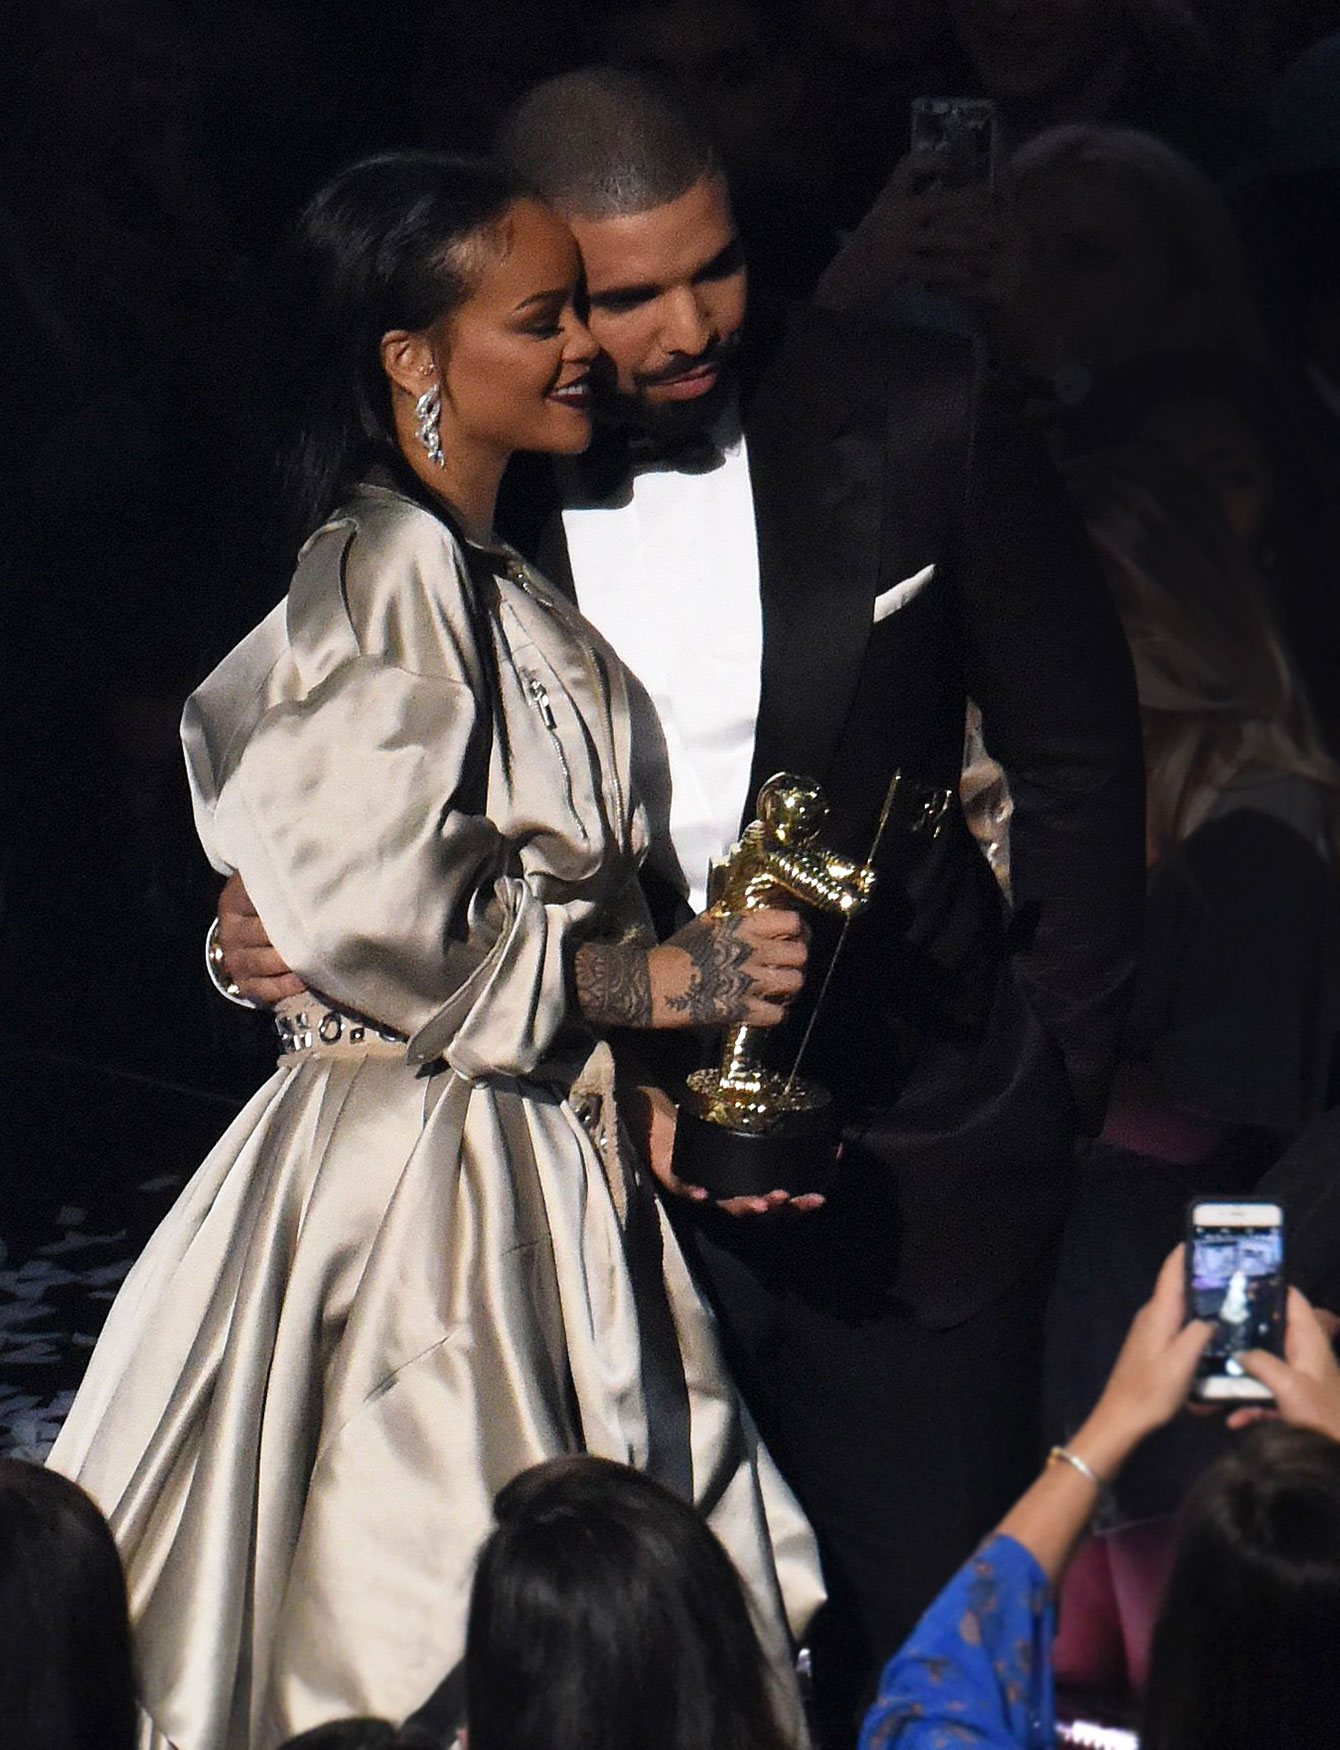 Rihanna Covers Up the Matching Shark Tattoo She Got With Drake: Details